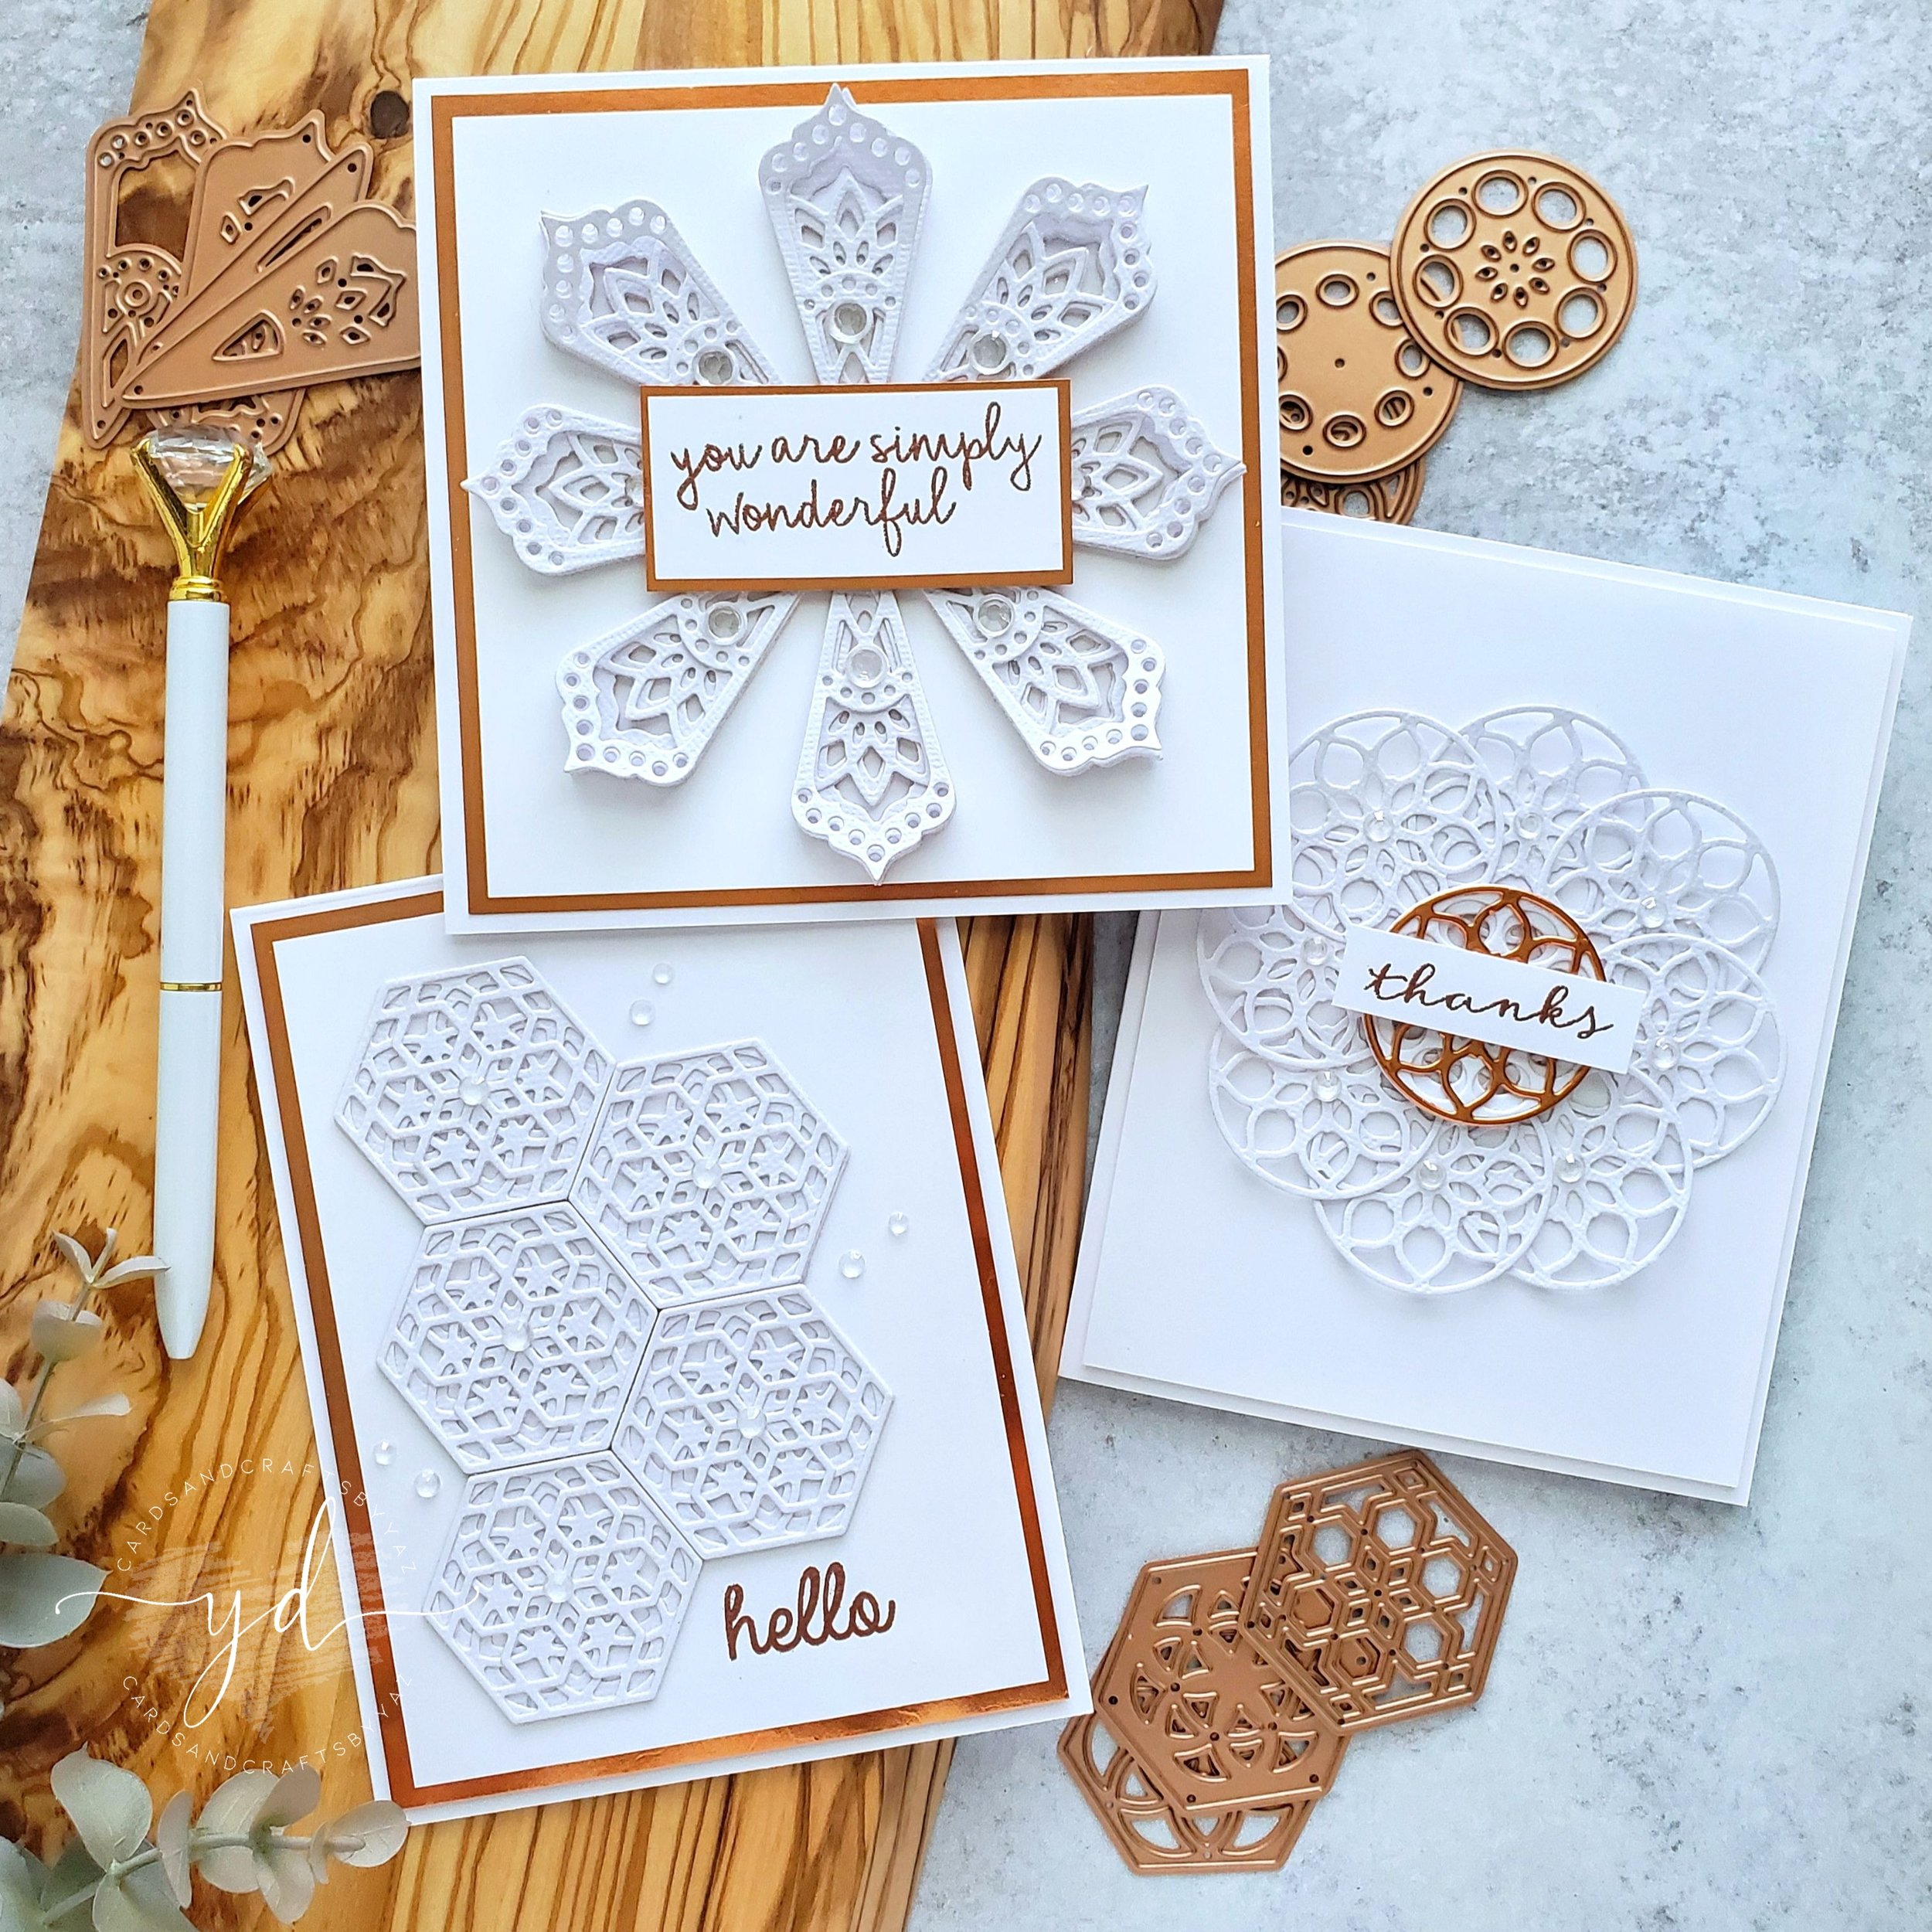 Spellbinders June 2019 Small Die of the Month Kaleidoscope Trio